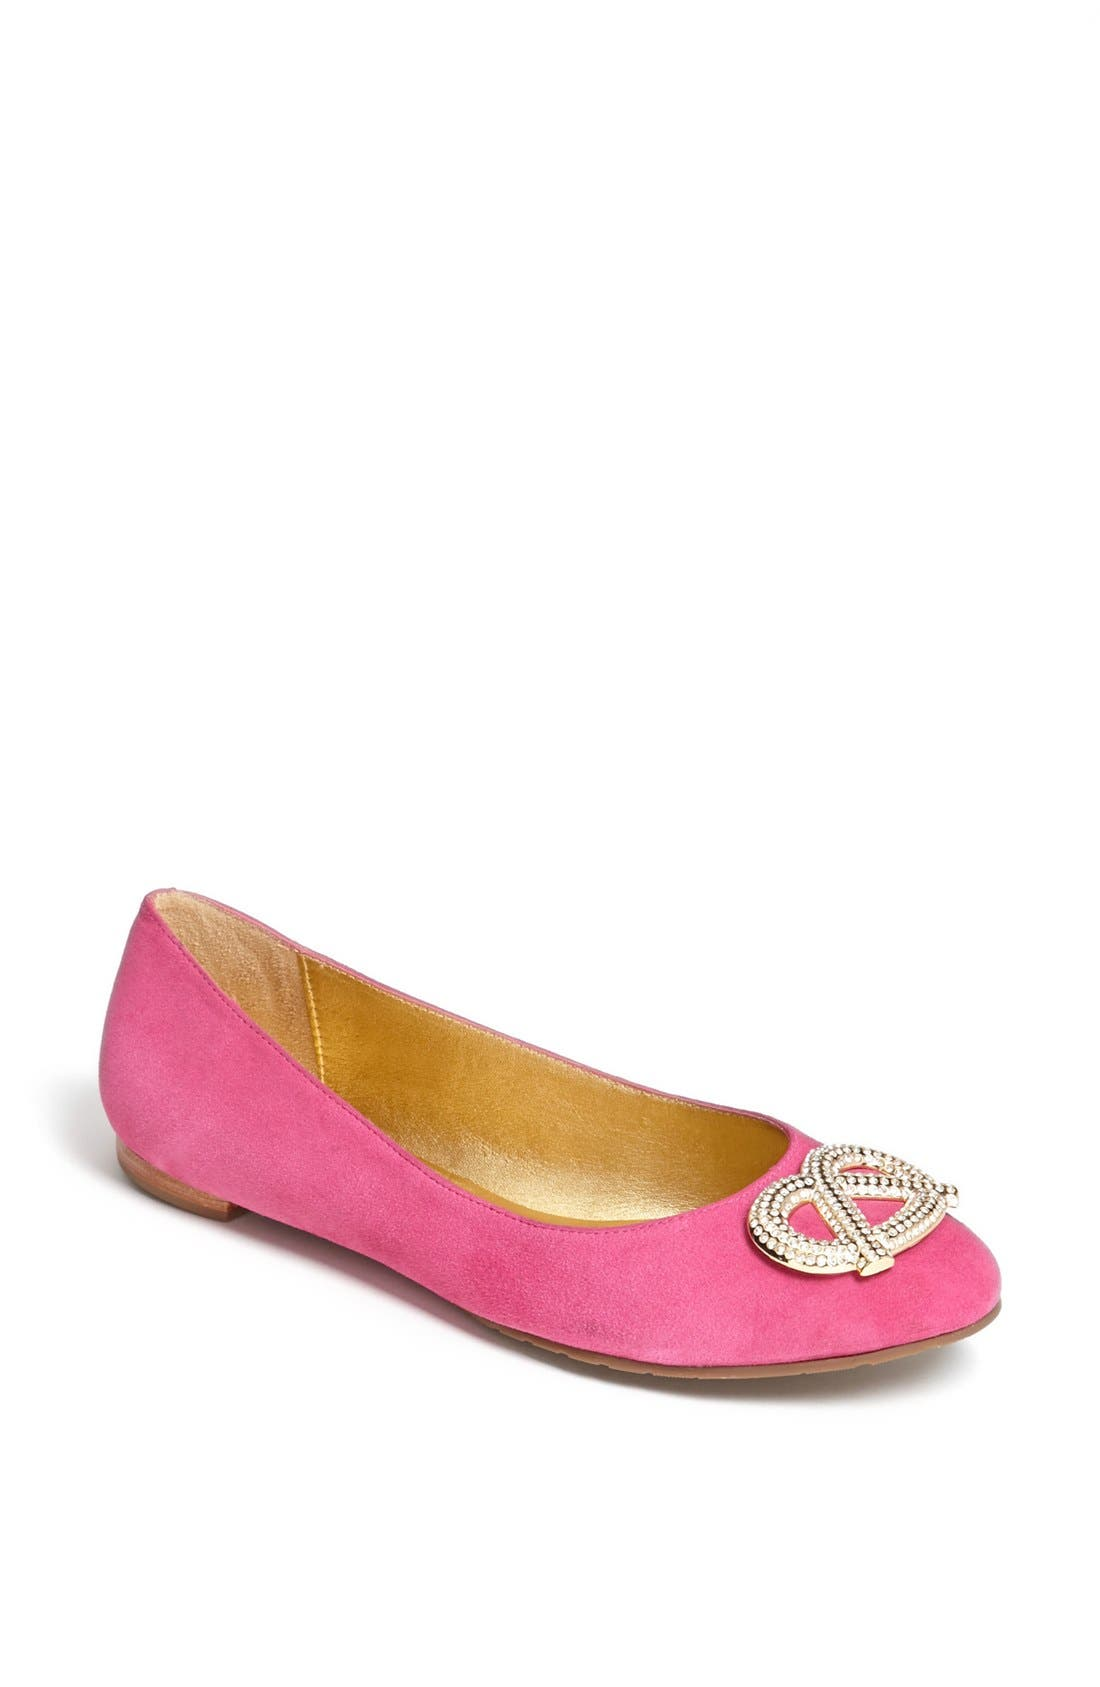 Main Image - kate spade new york 'telly' ballet flat